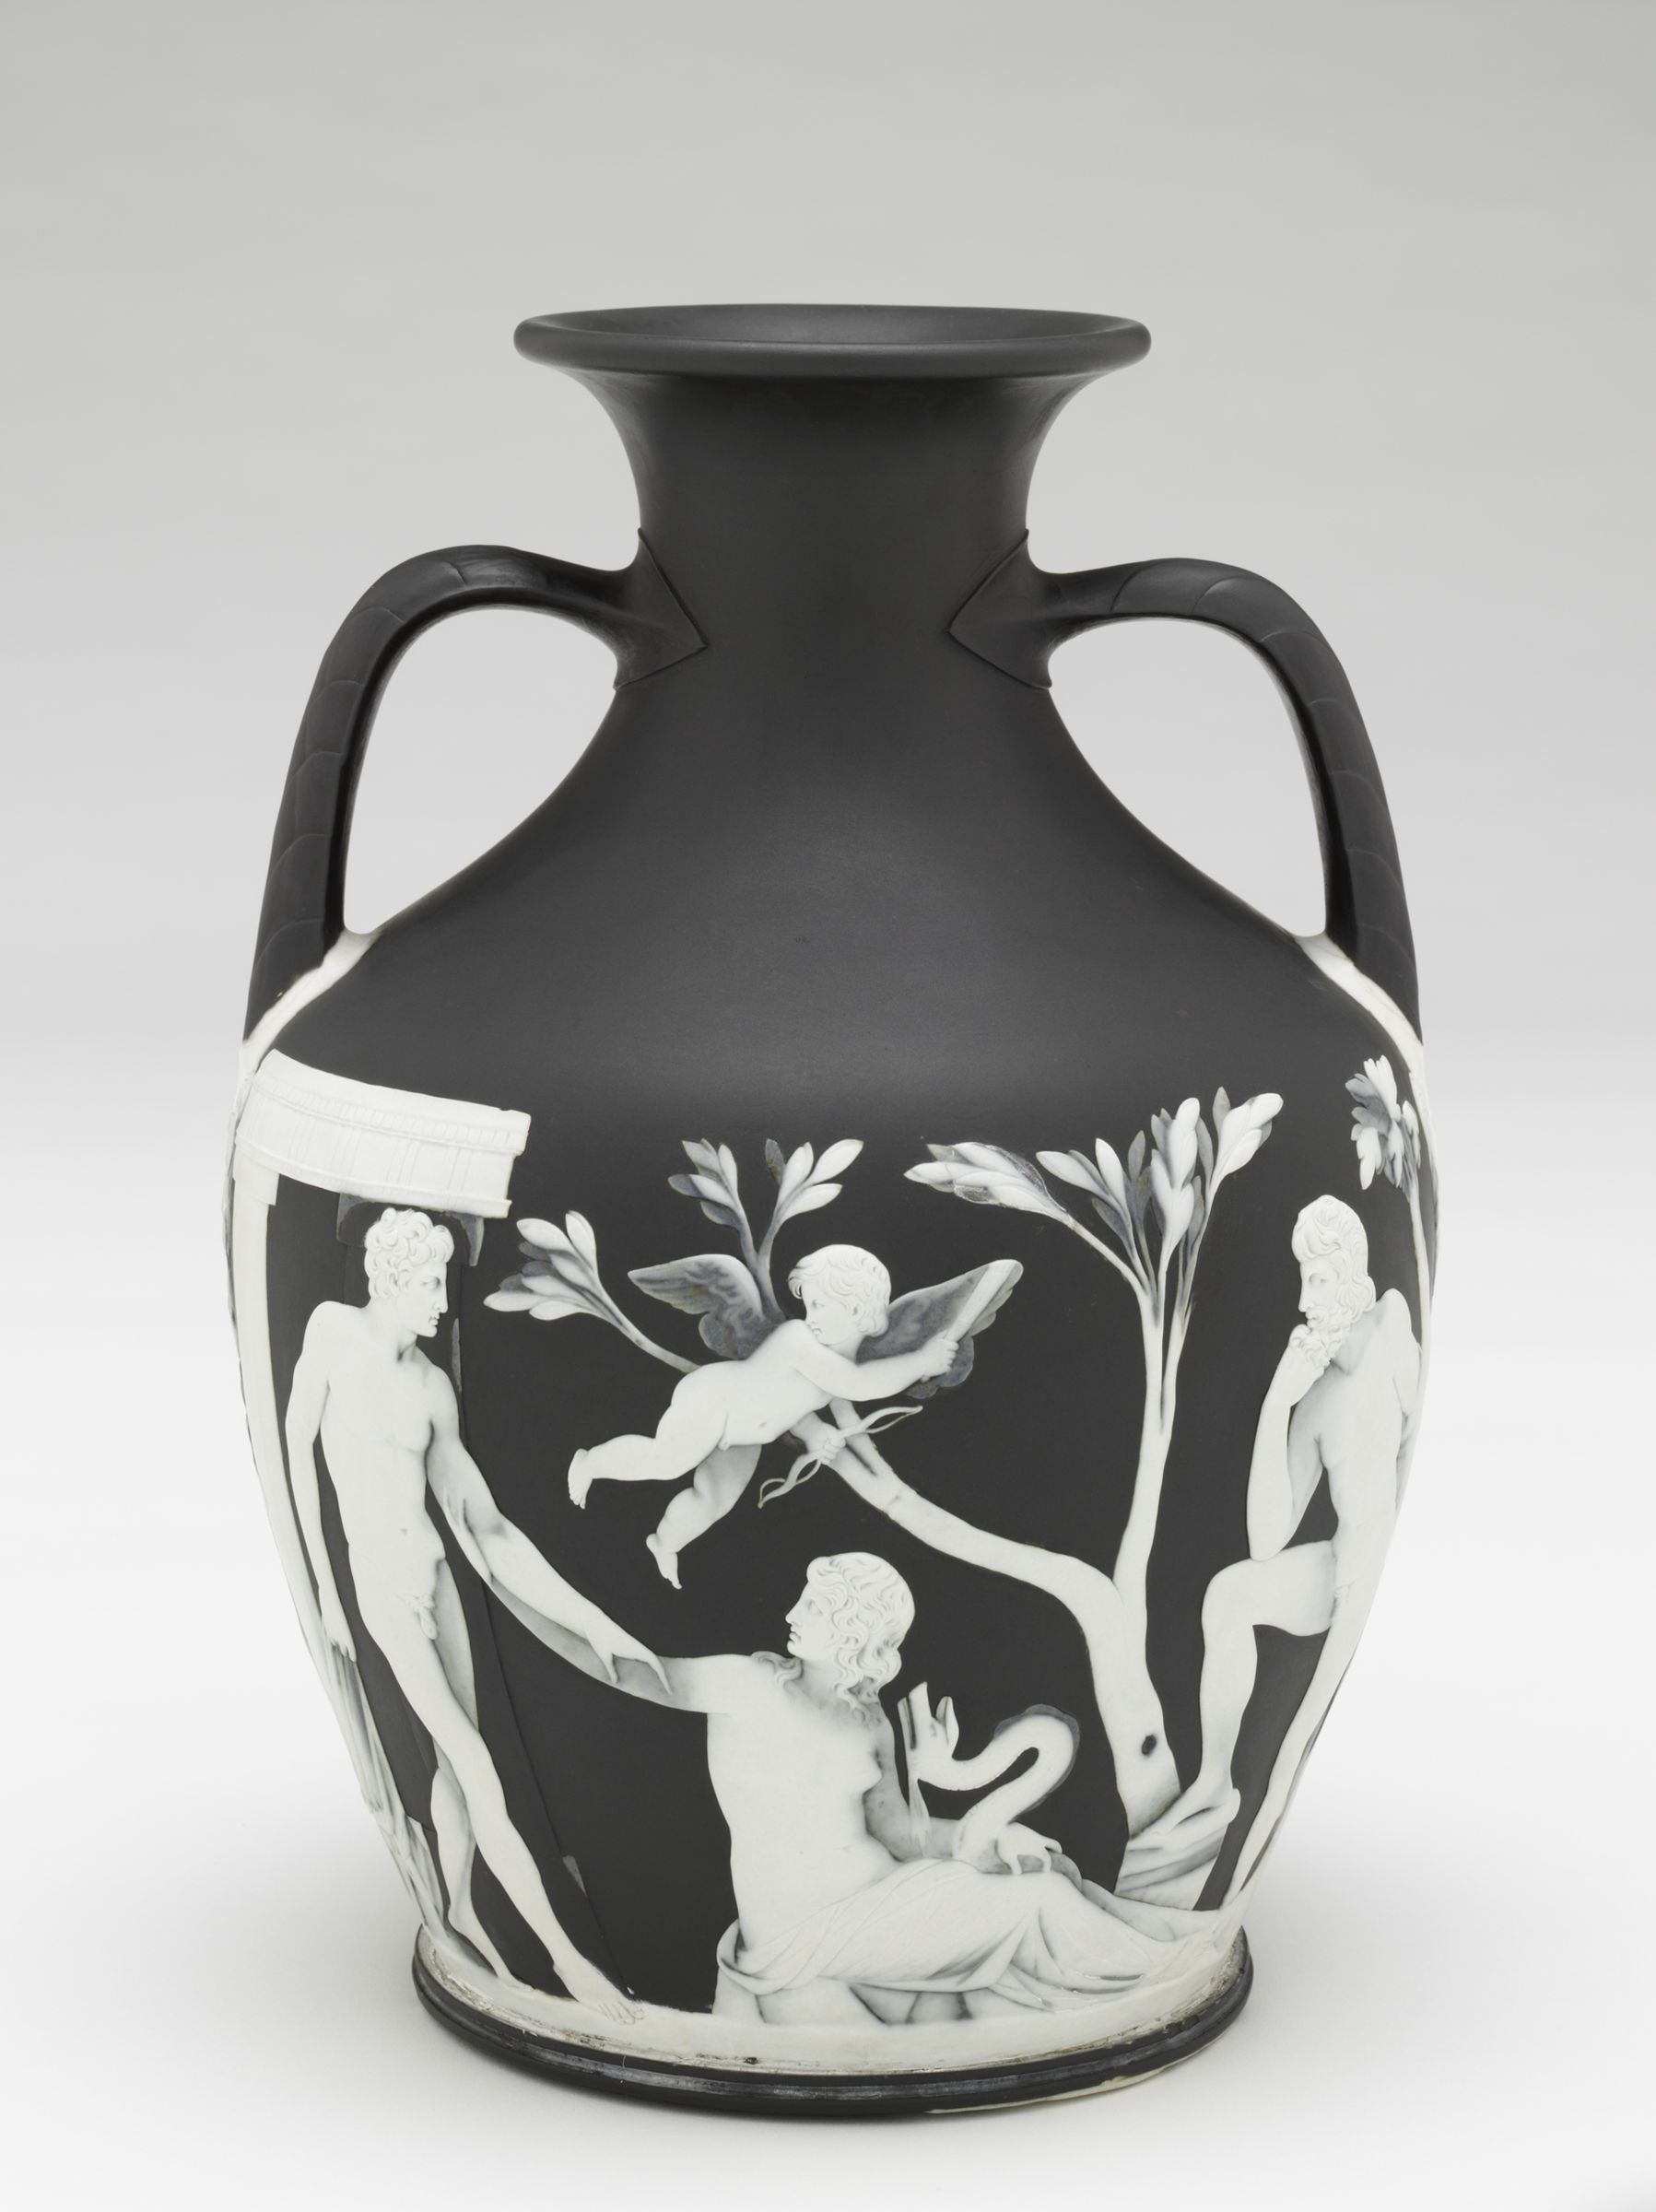 A vase with a wide body and tapered neck with two handles, decorated in shallow relief design, features two standing men, a cupid, and a sitting woman with a snake in front of a tree.